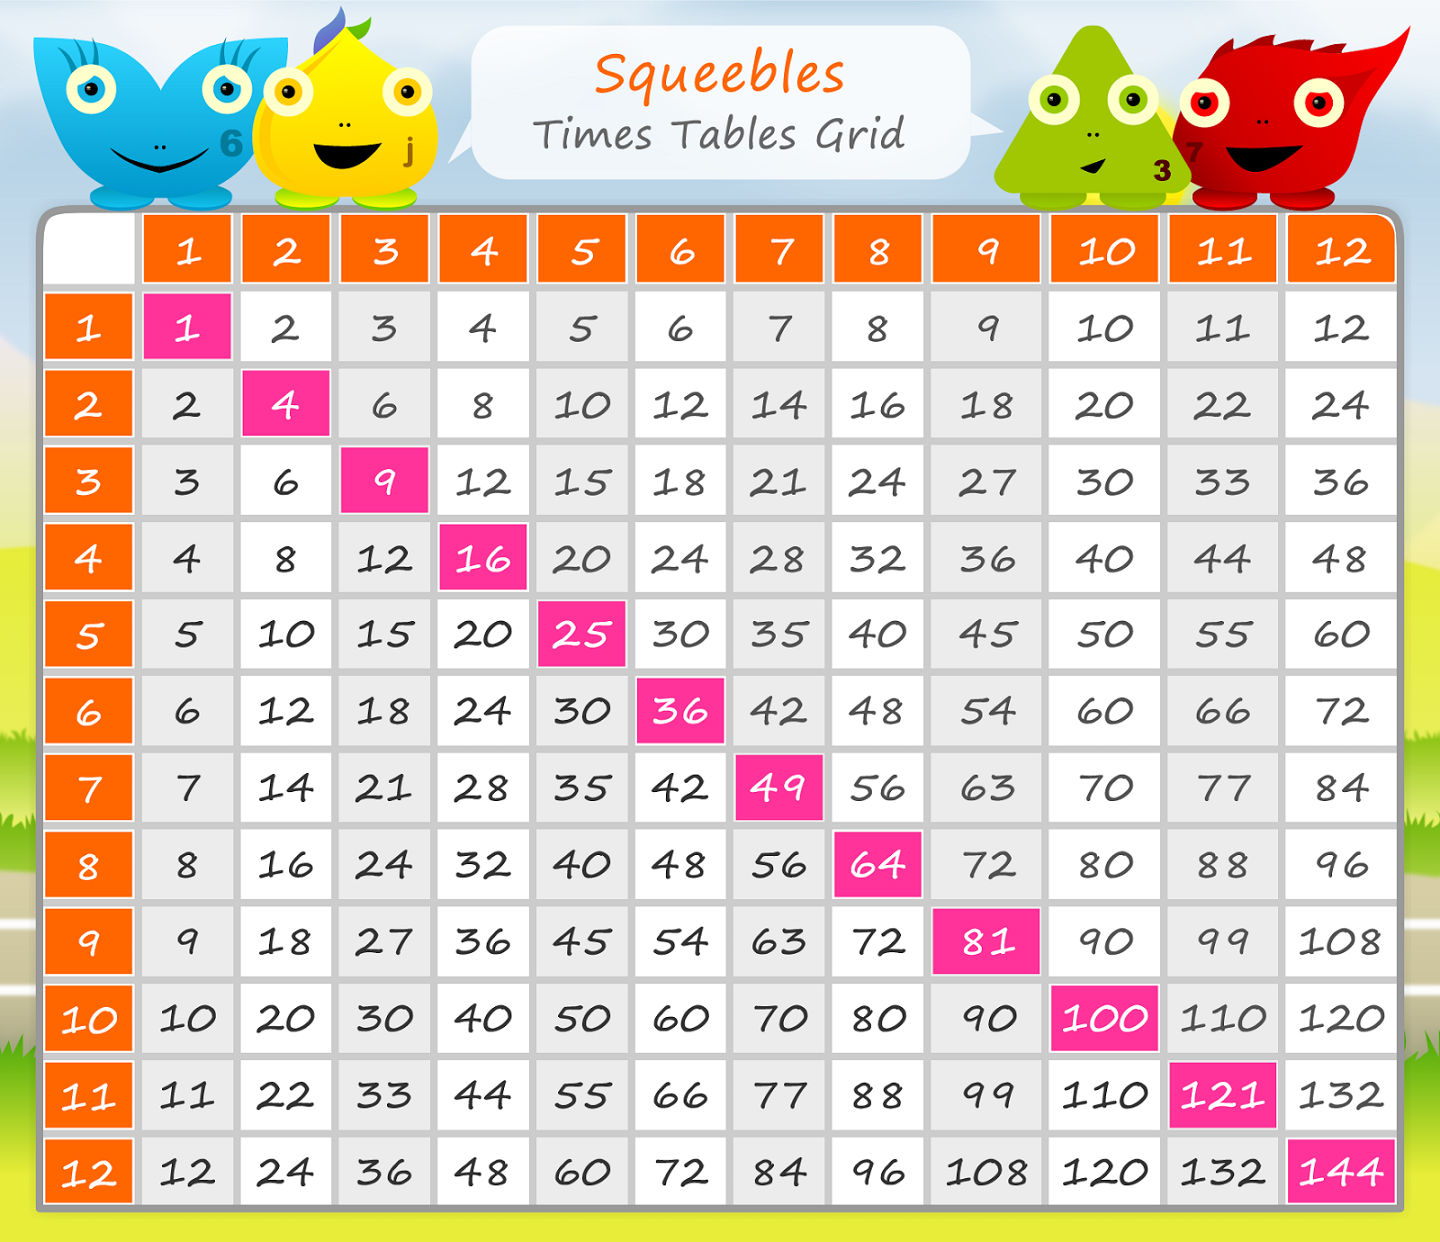 worksheet Times Table Chart Printable times table chart 1 100 printable activity shelter image via kiddoshelter com